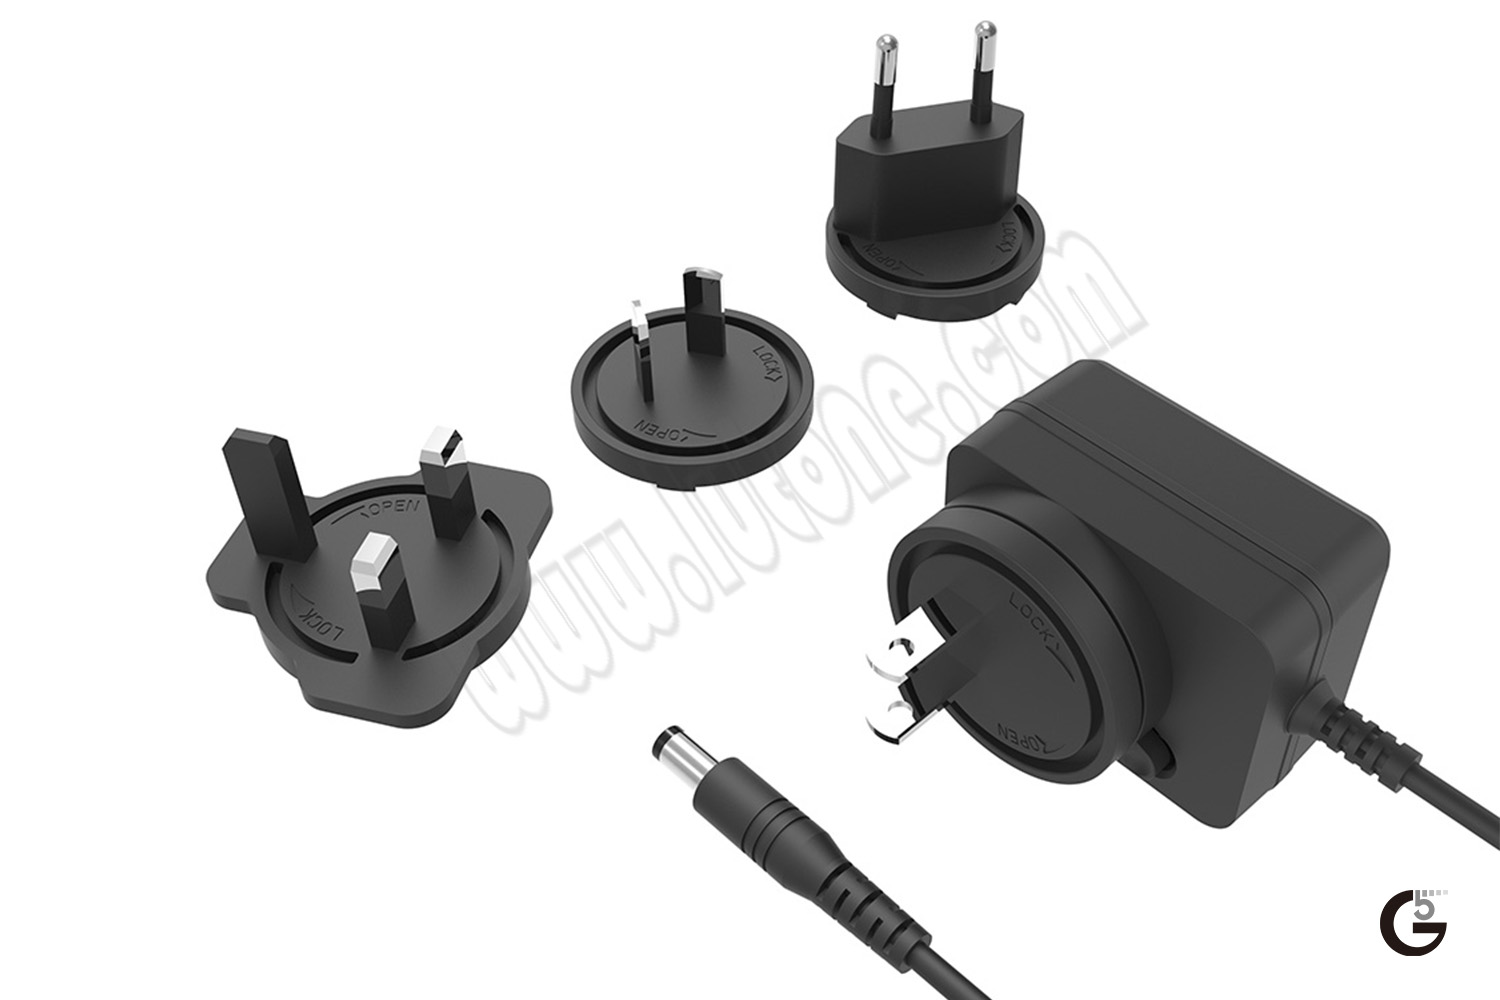 12 Interchangeable Horizontal USB/Cable Series